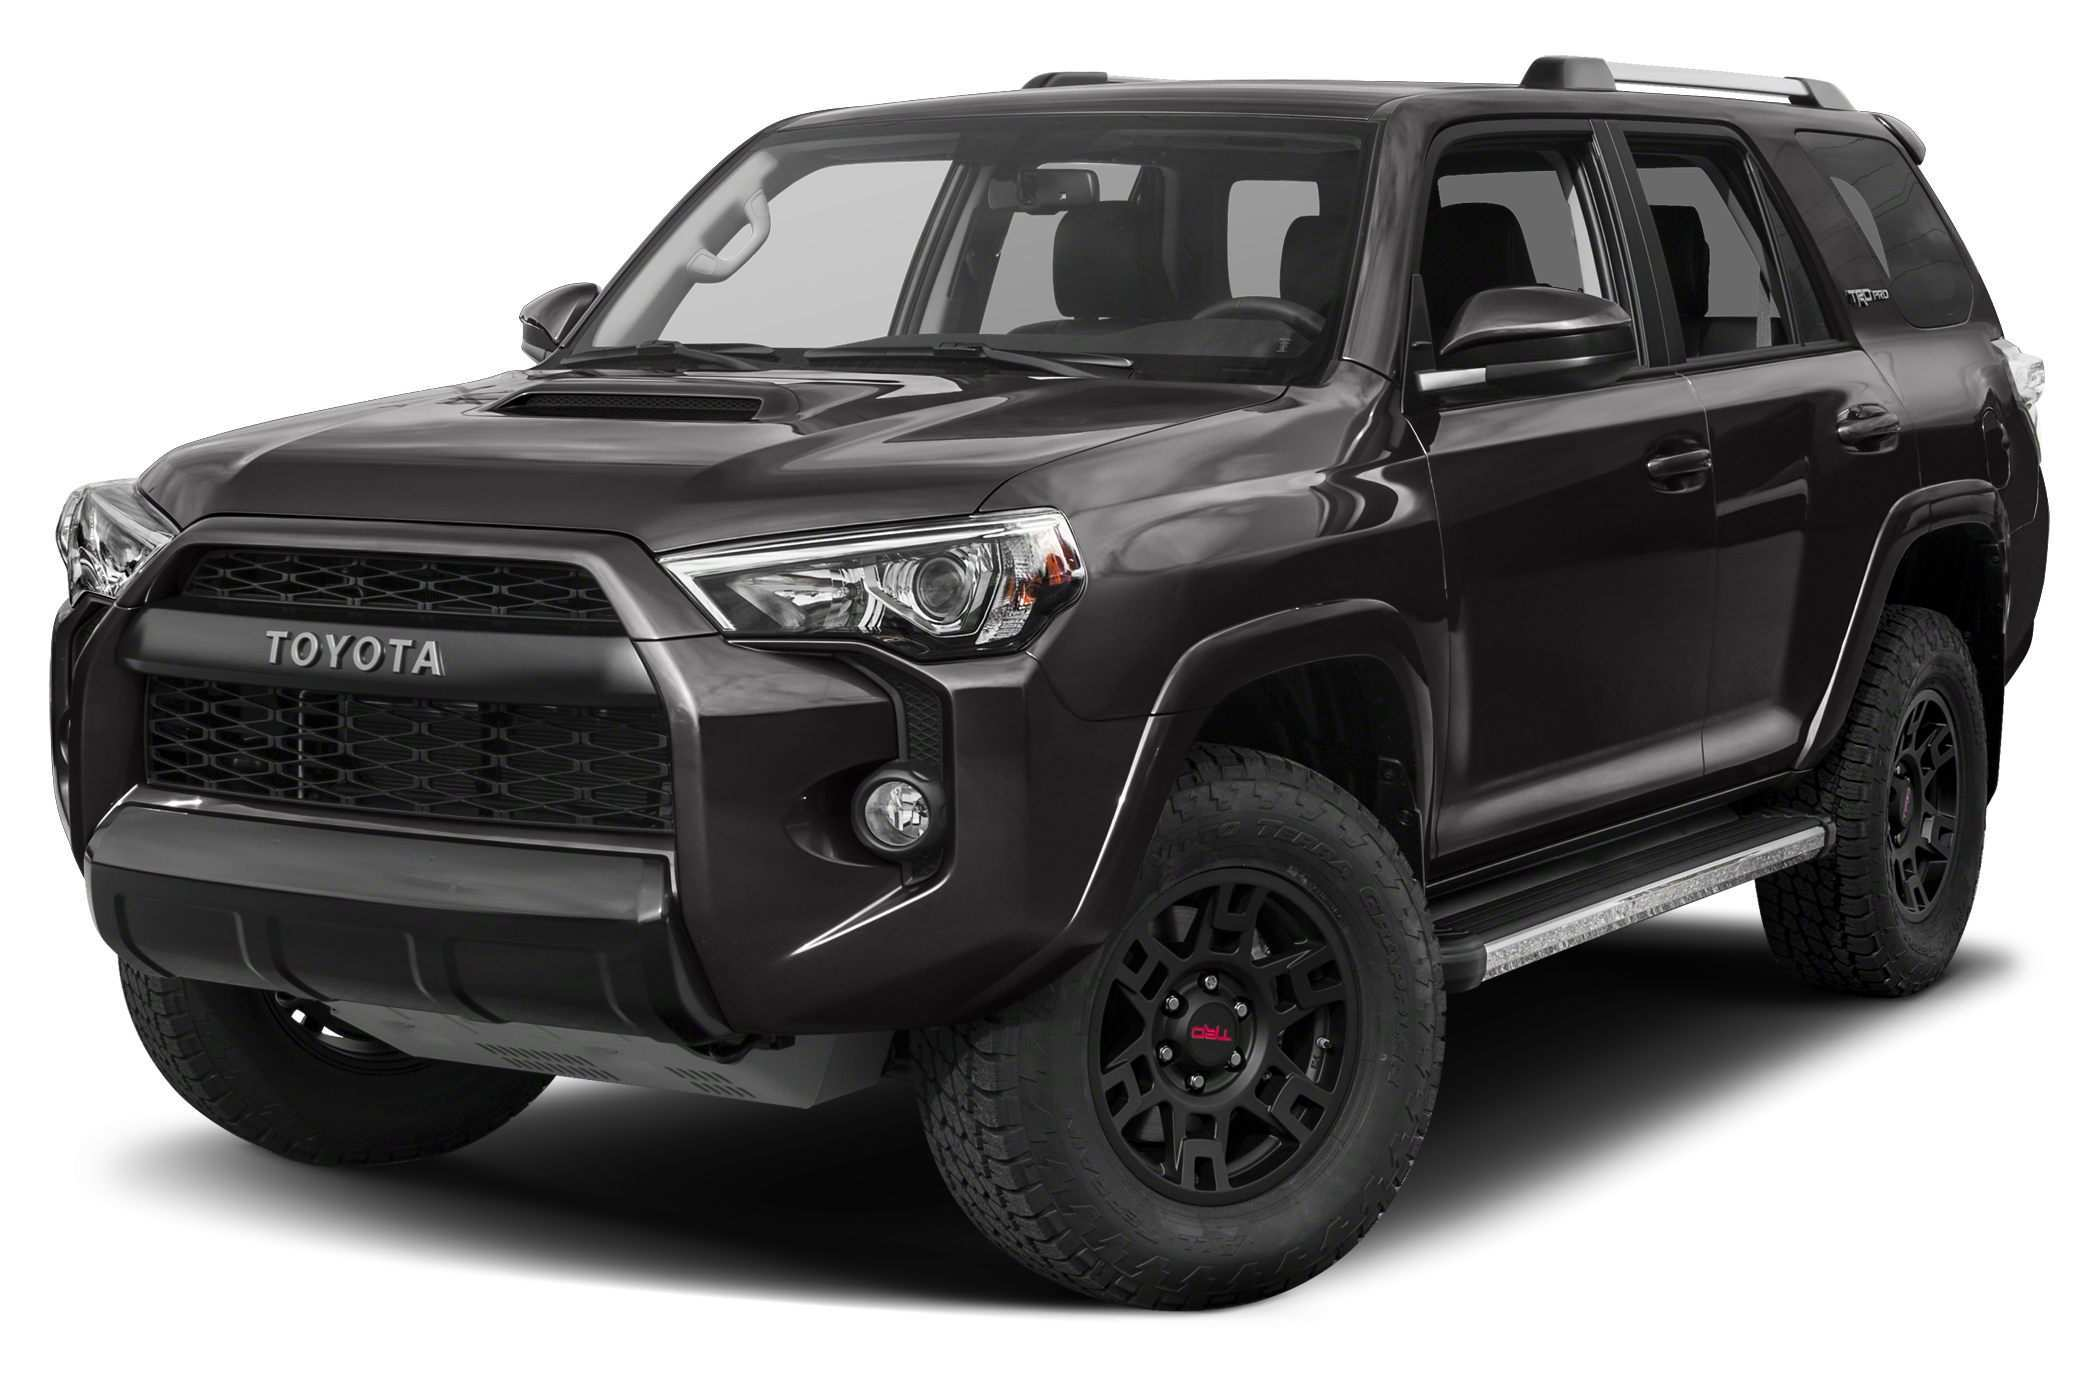 47 All New 2019 Toyota 4Runner Trd Pro Review Interior by 2019 Toyota 4Runner Trd Pro Review